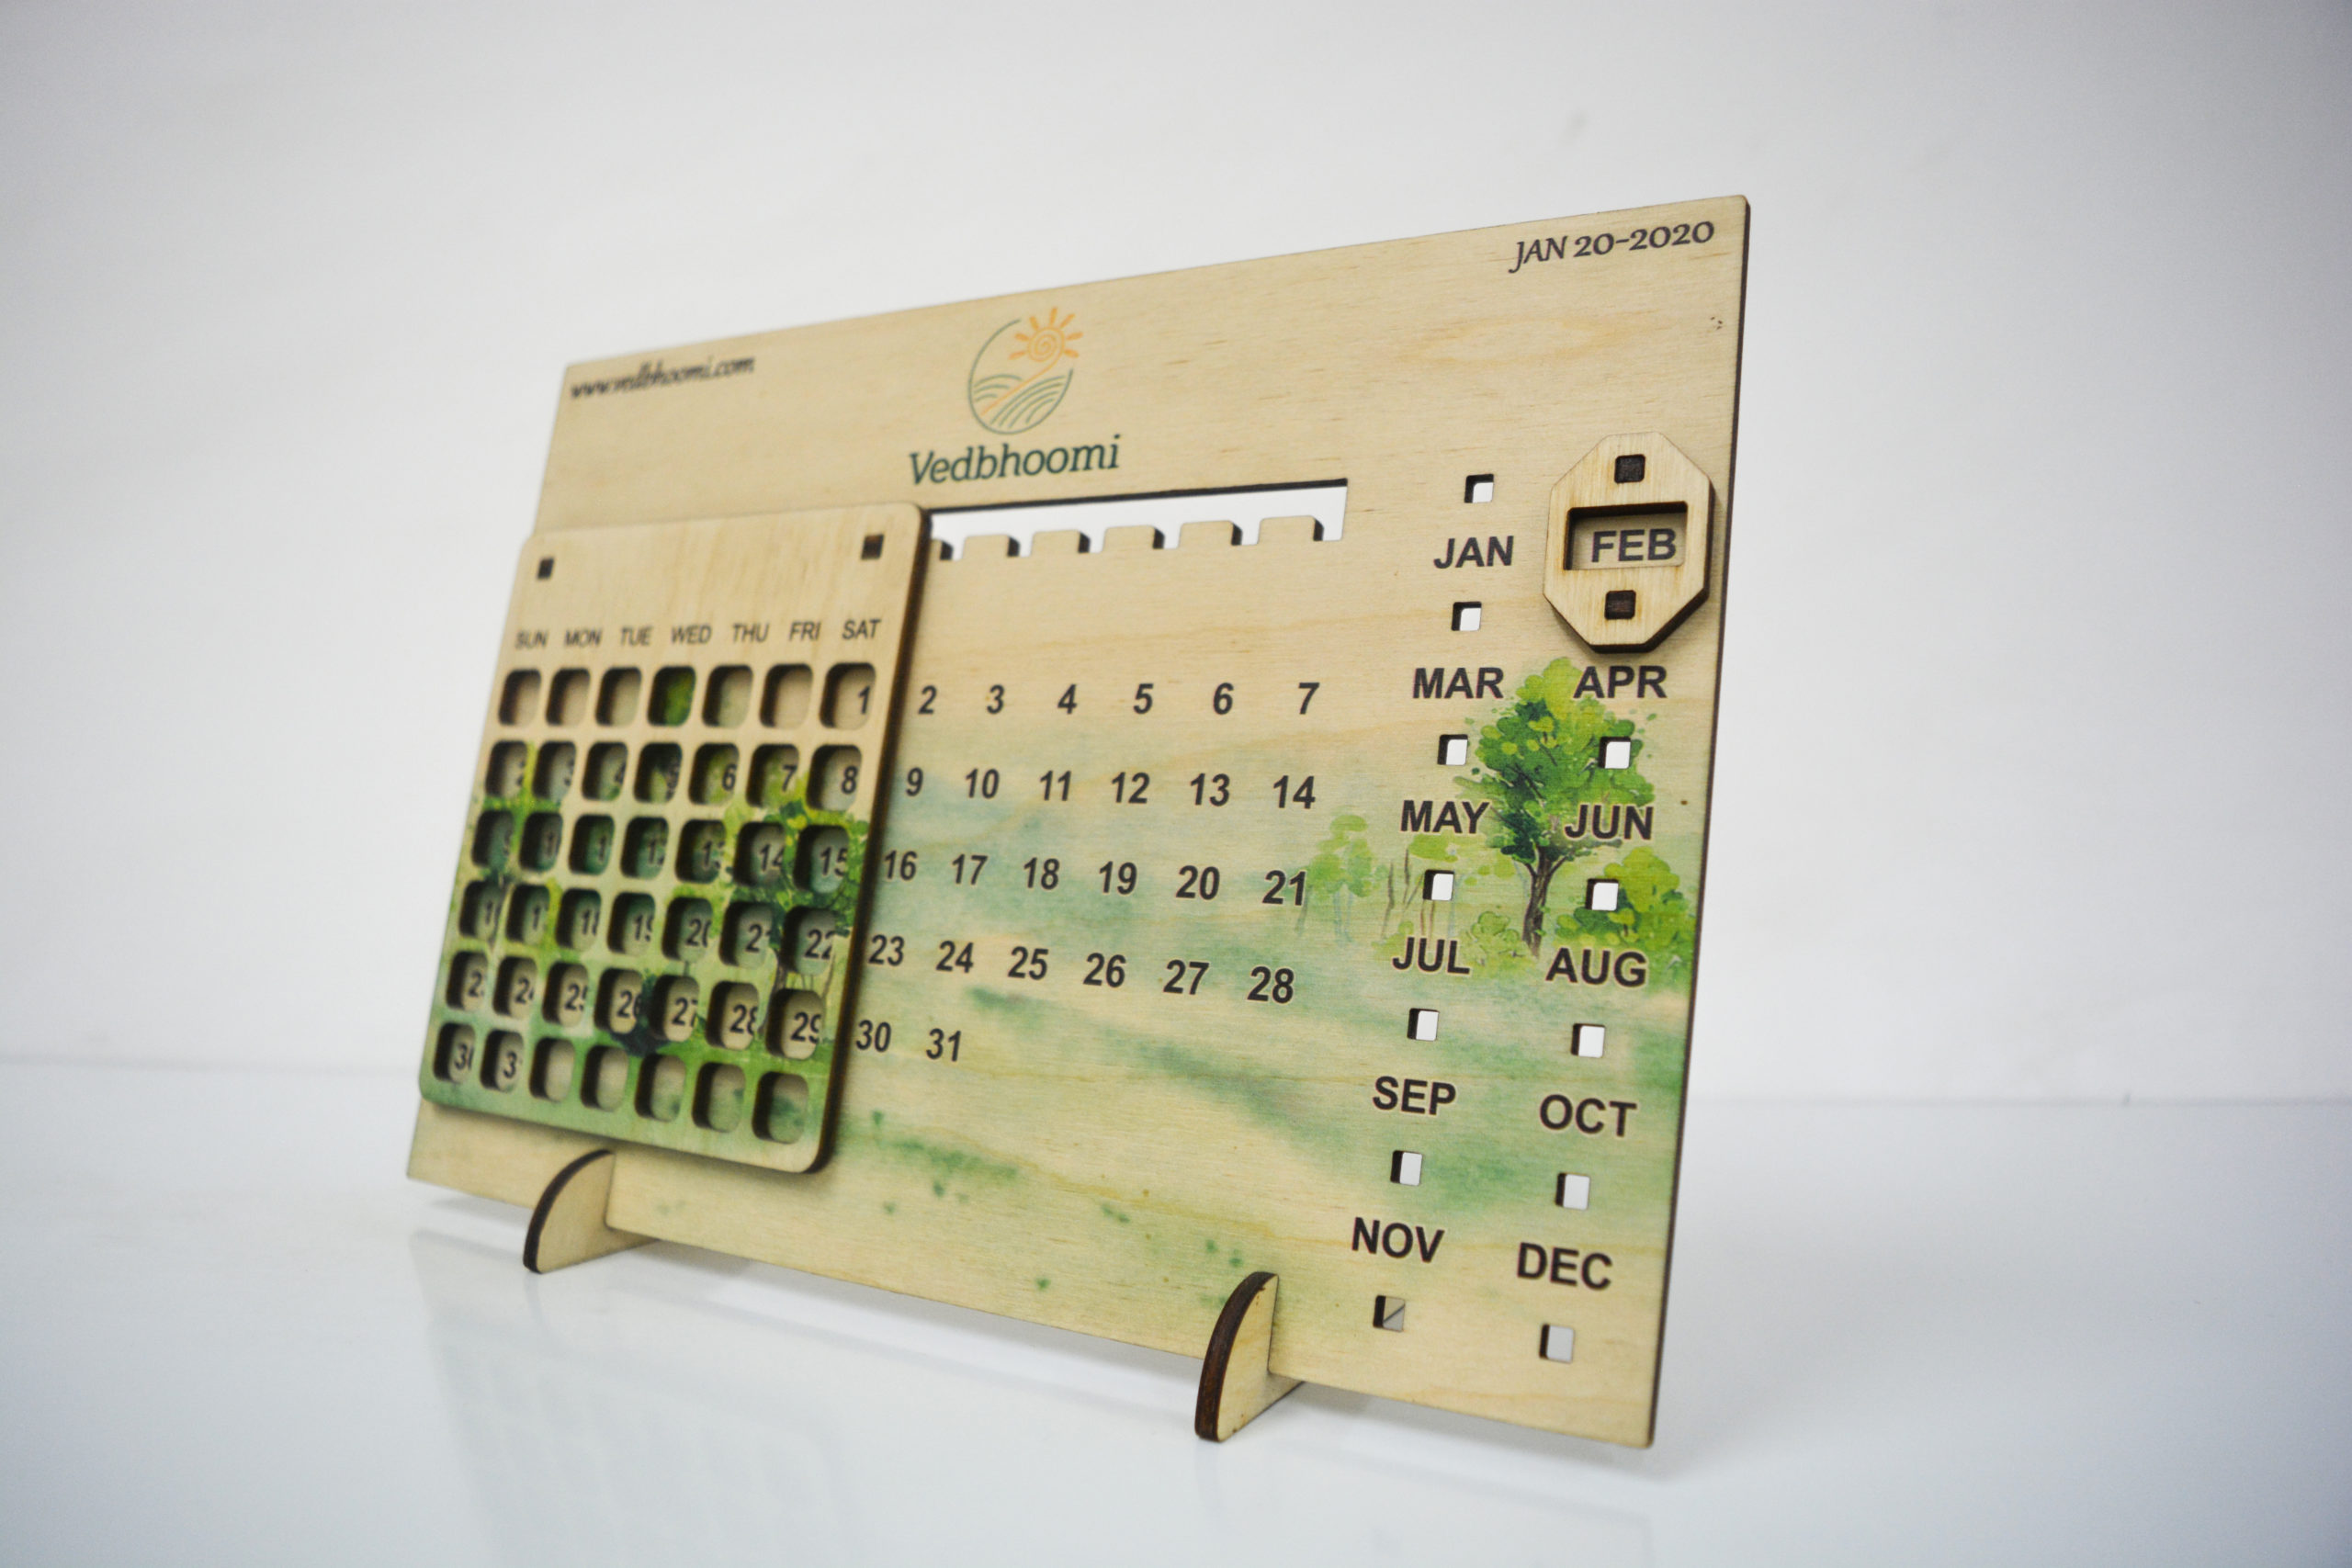 UV printed Lasercut Birch ply perpetual calender